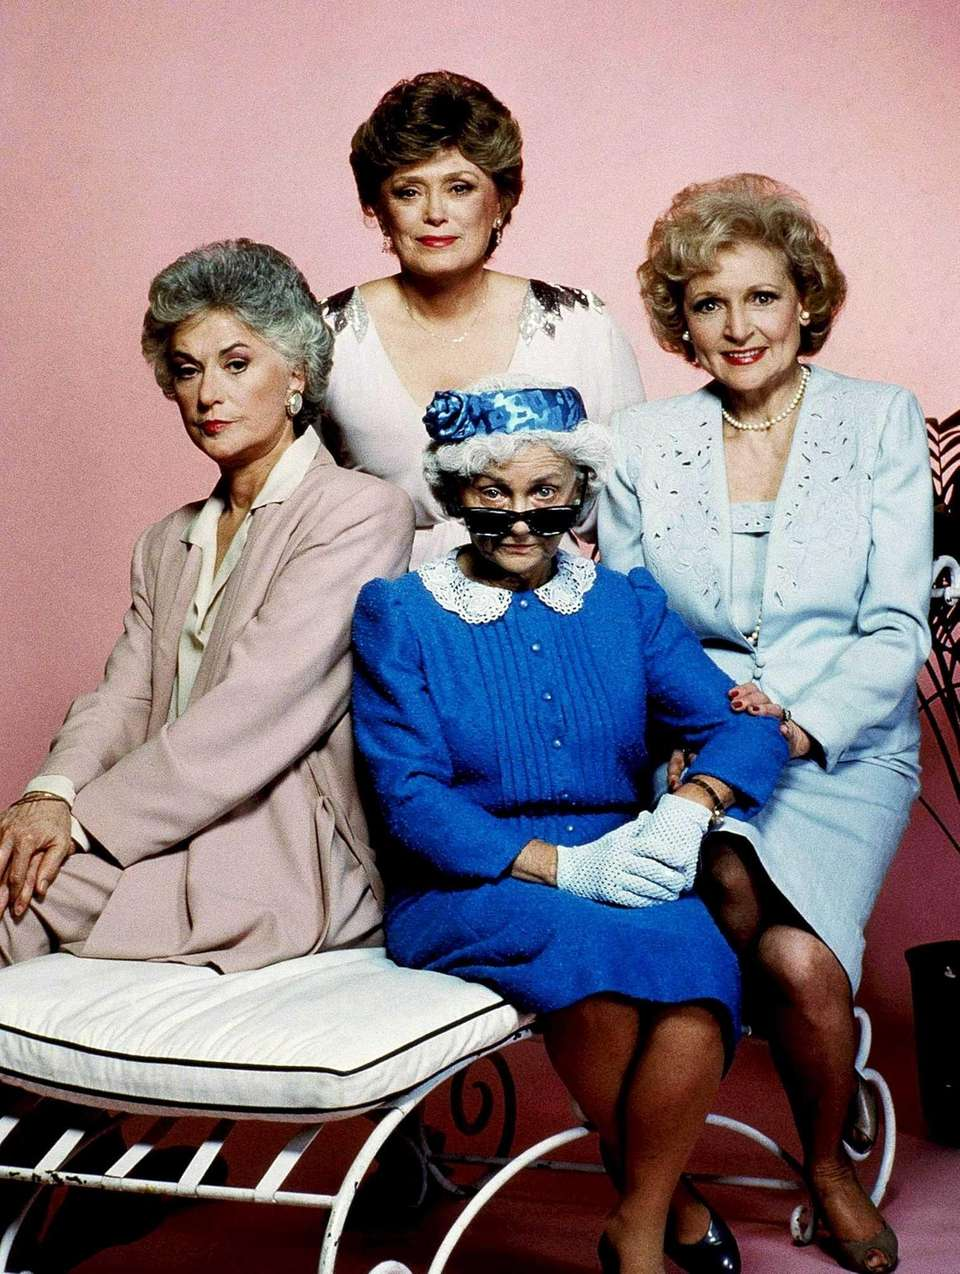 Four seniors (Bea Arthur, Estelle Getty, Rue McClanahan,